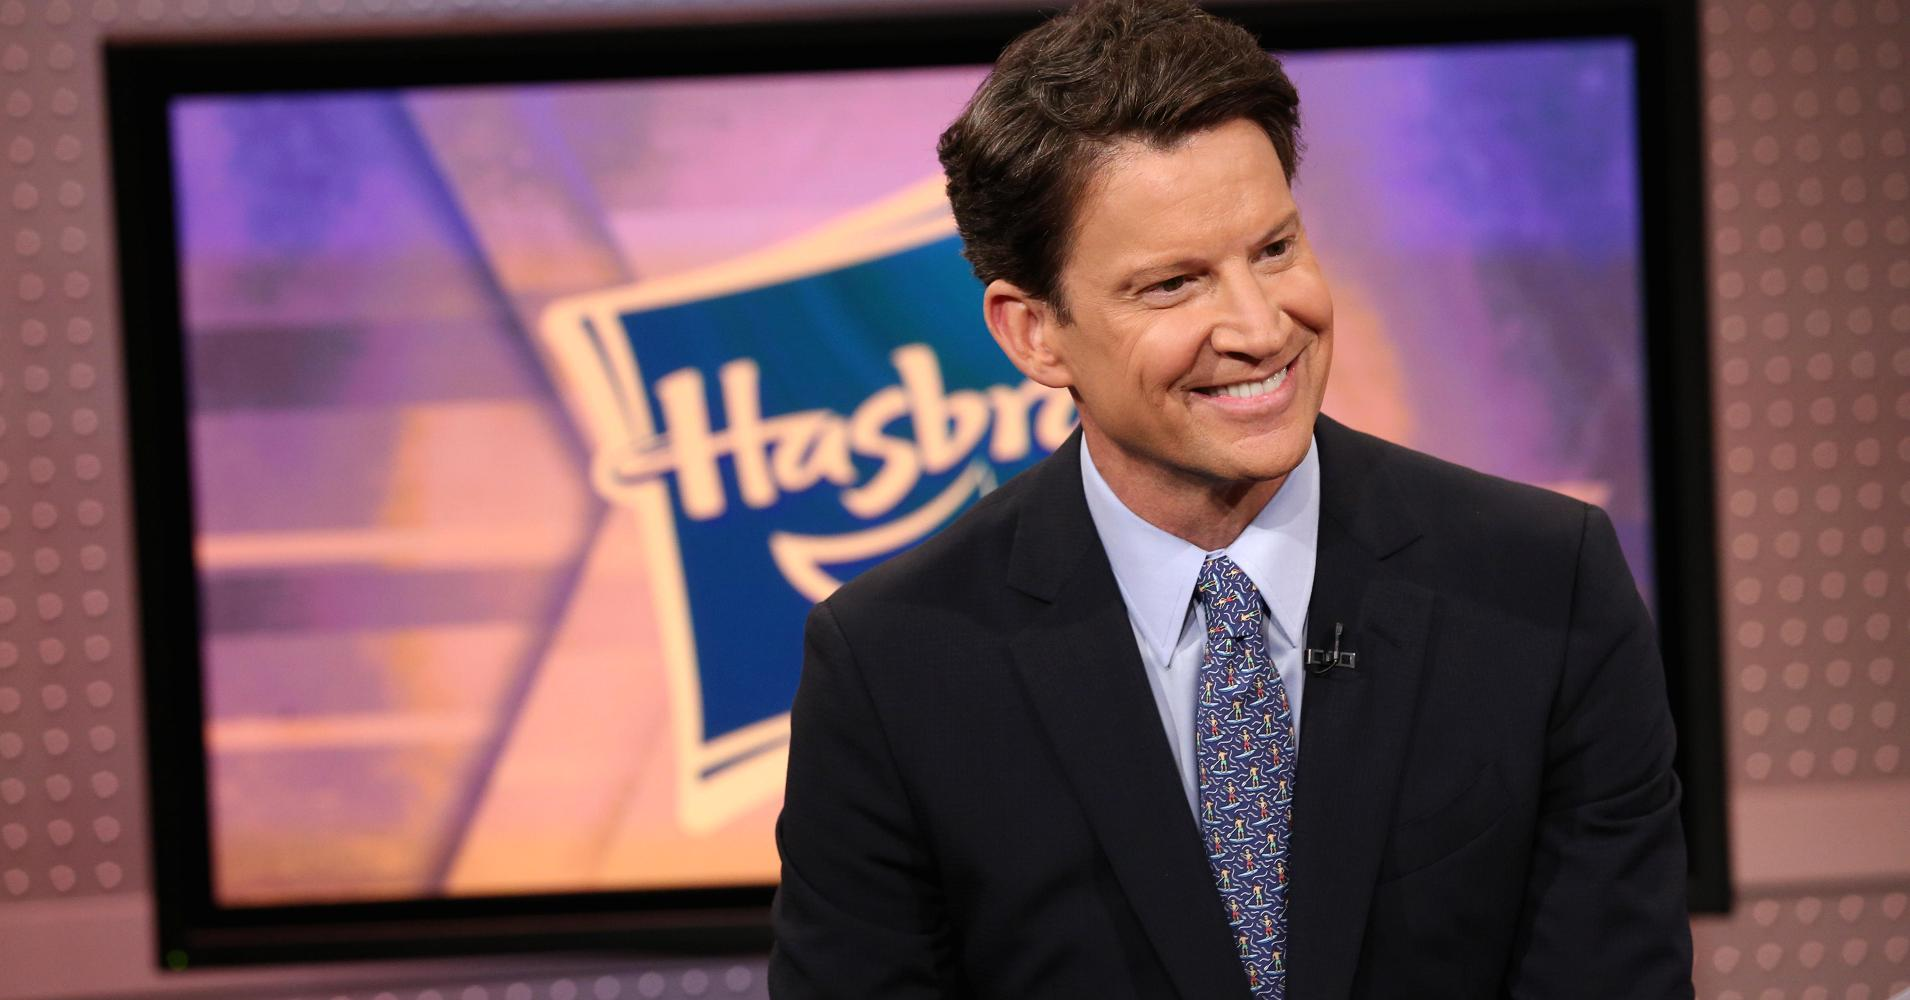 hasbro ceo brian goldner inducted to lima of fame